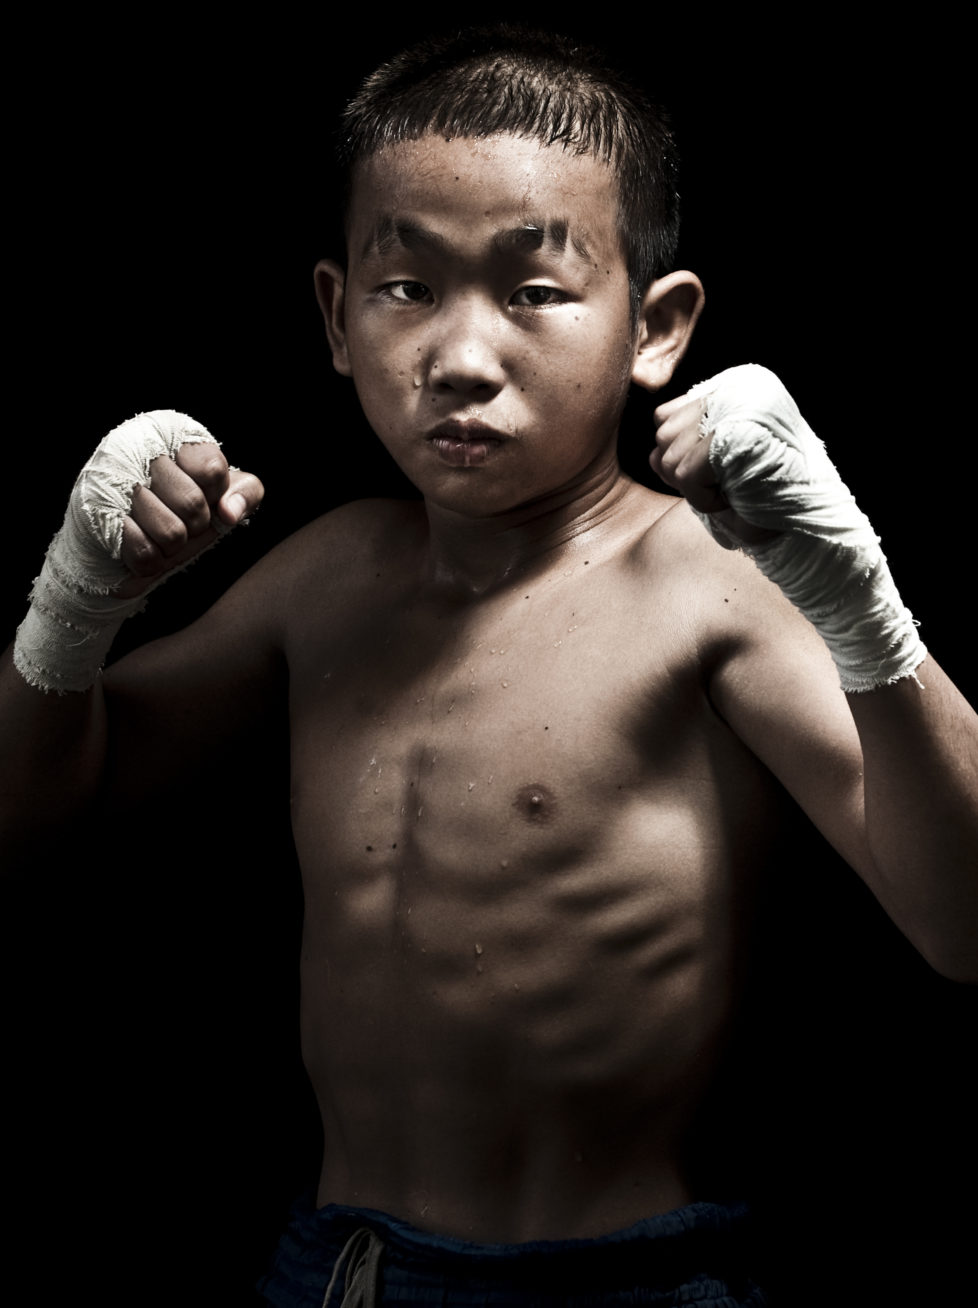 """Muay Thai Kickboxing fighter Petchwiengian of Laos poses at Sangmorakot gymnasium in Bangkok, Thailand. Muay Thai, also know as """"Art of Eight Limbs"""", is a combat martial art and Thailand's national sport. (Photo by Victor Fraile/Corbis via Getty Images)"""